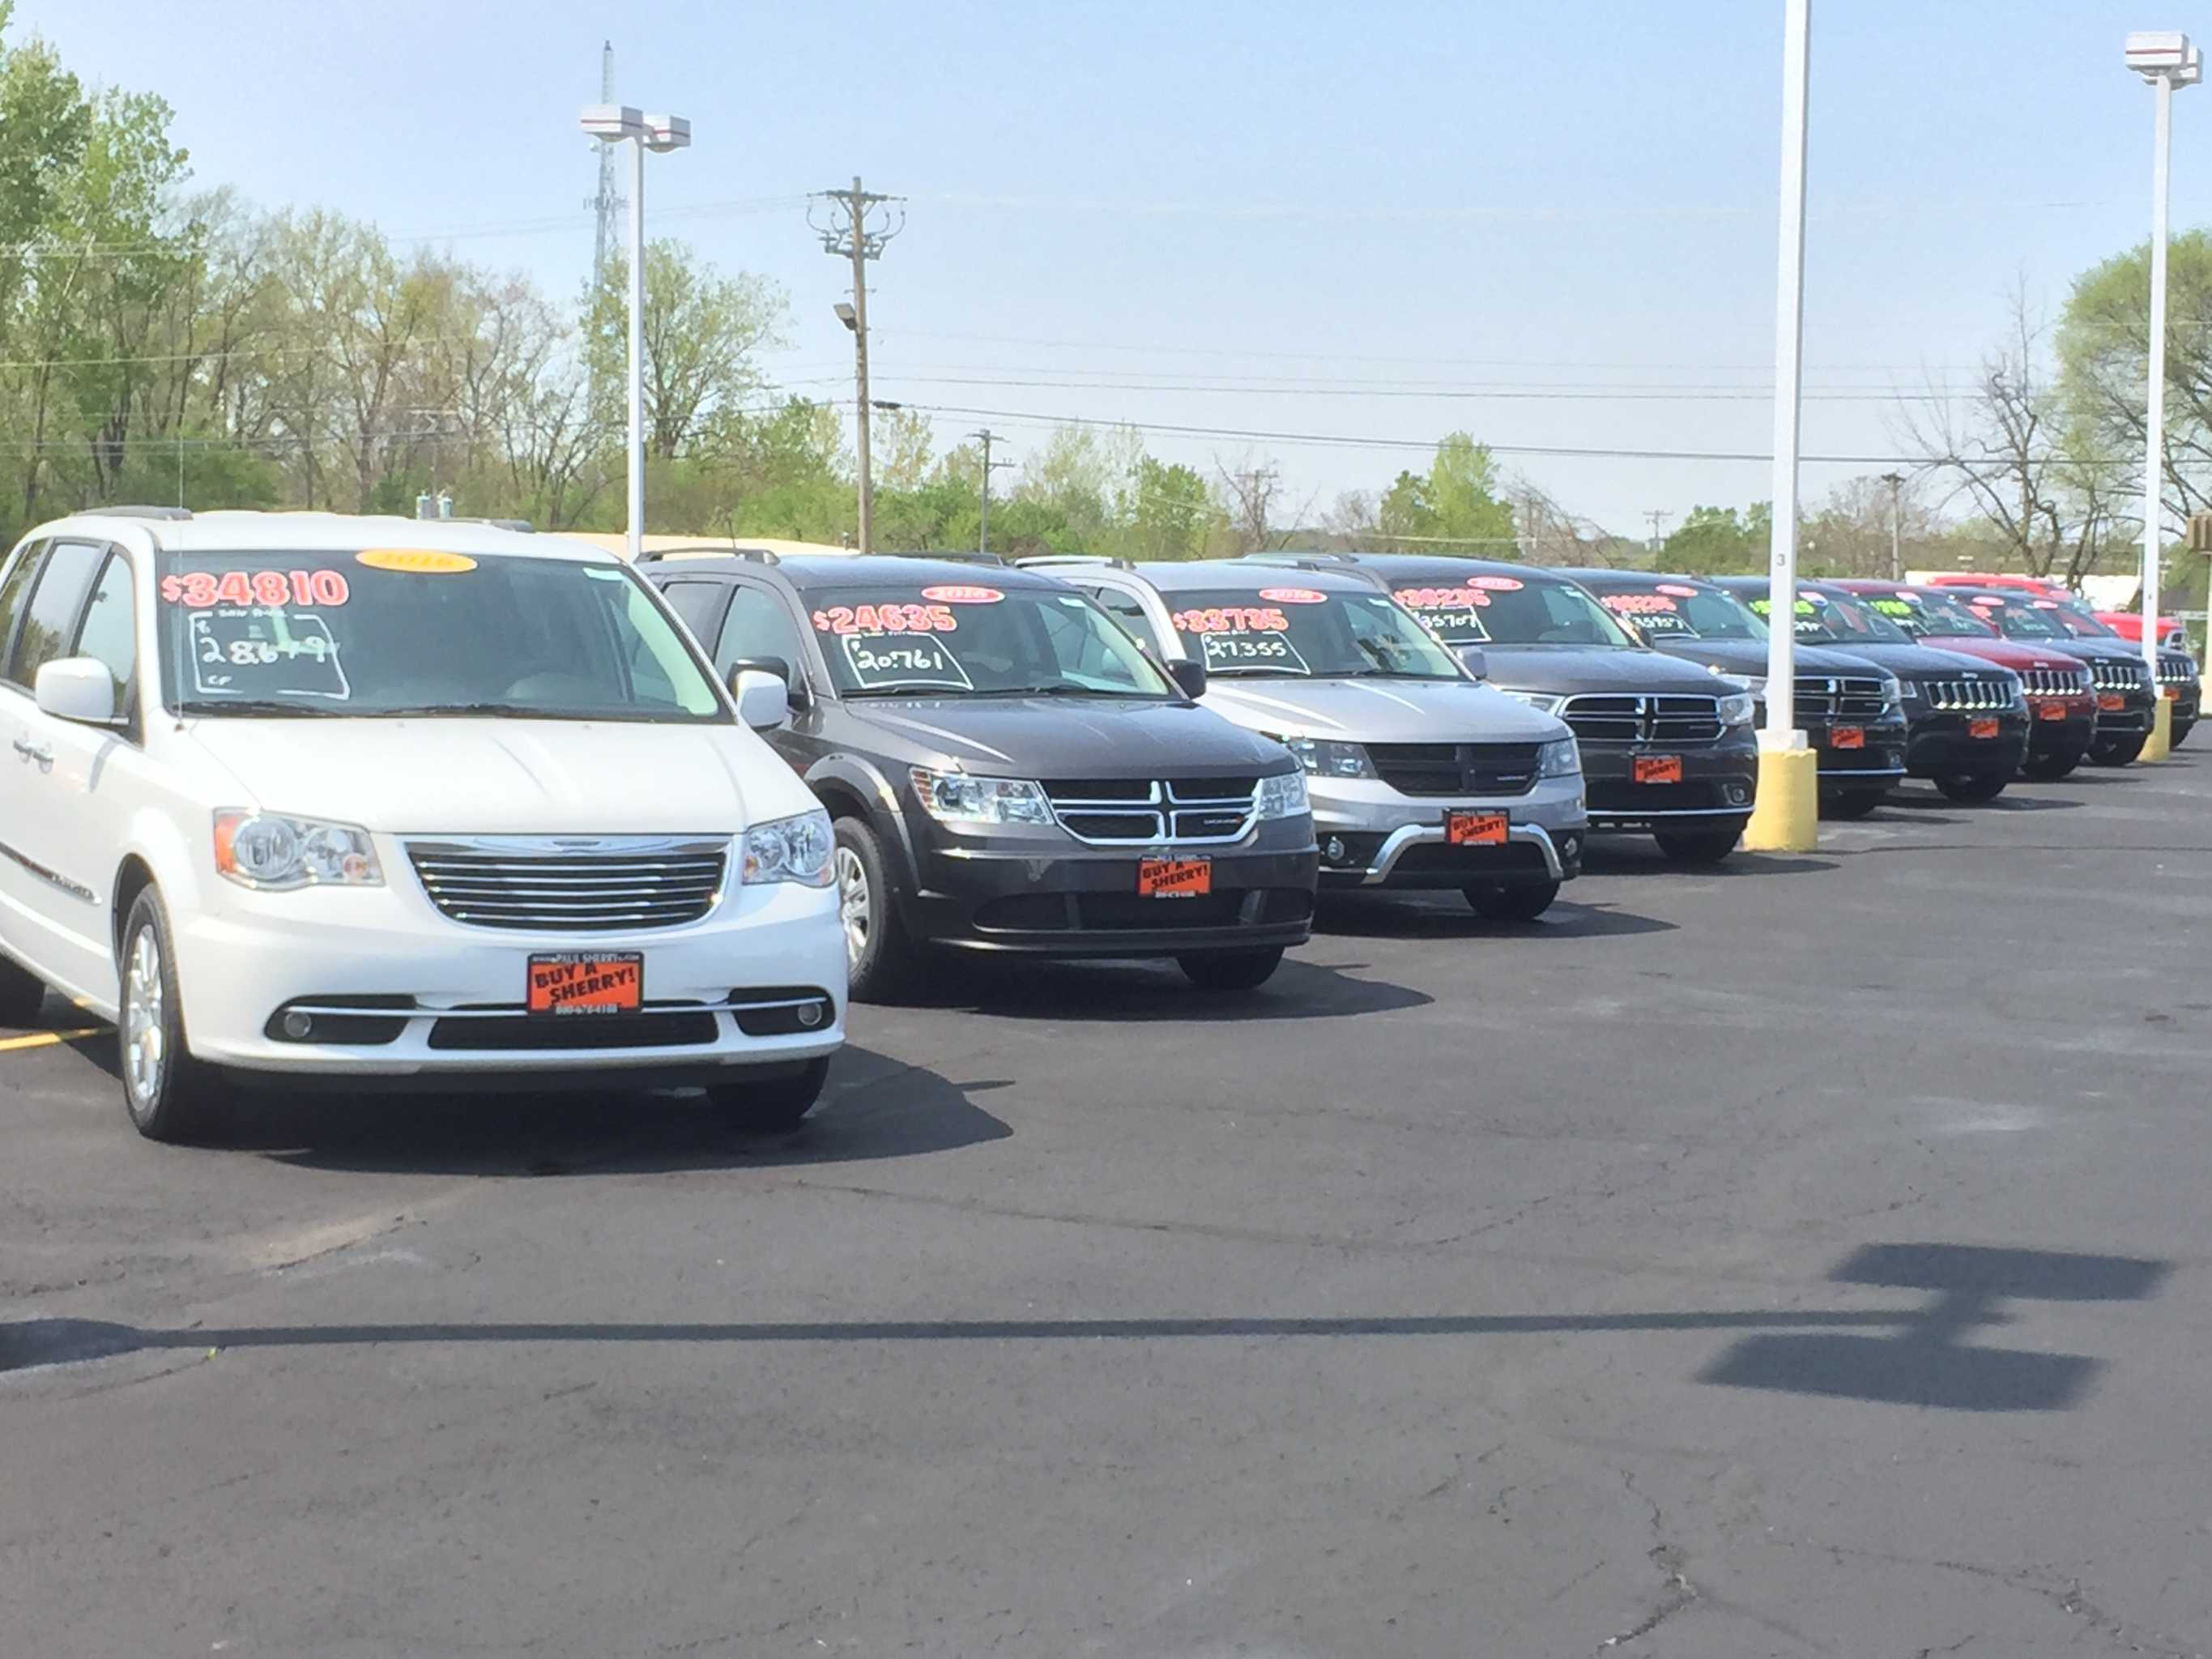 car-dealer-dayton-ohio-1